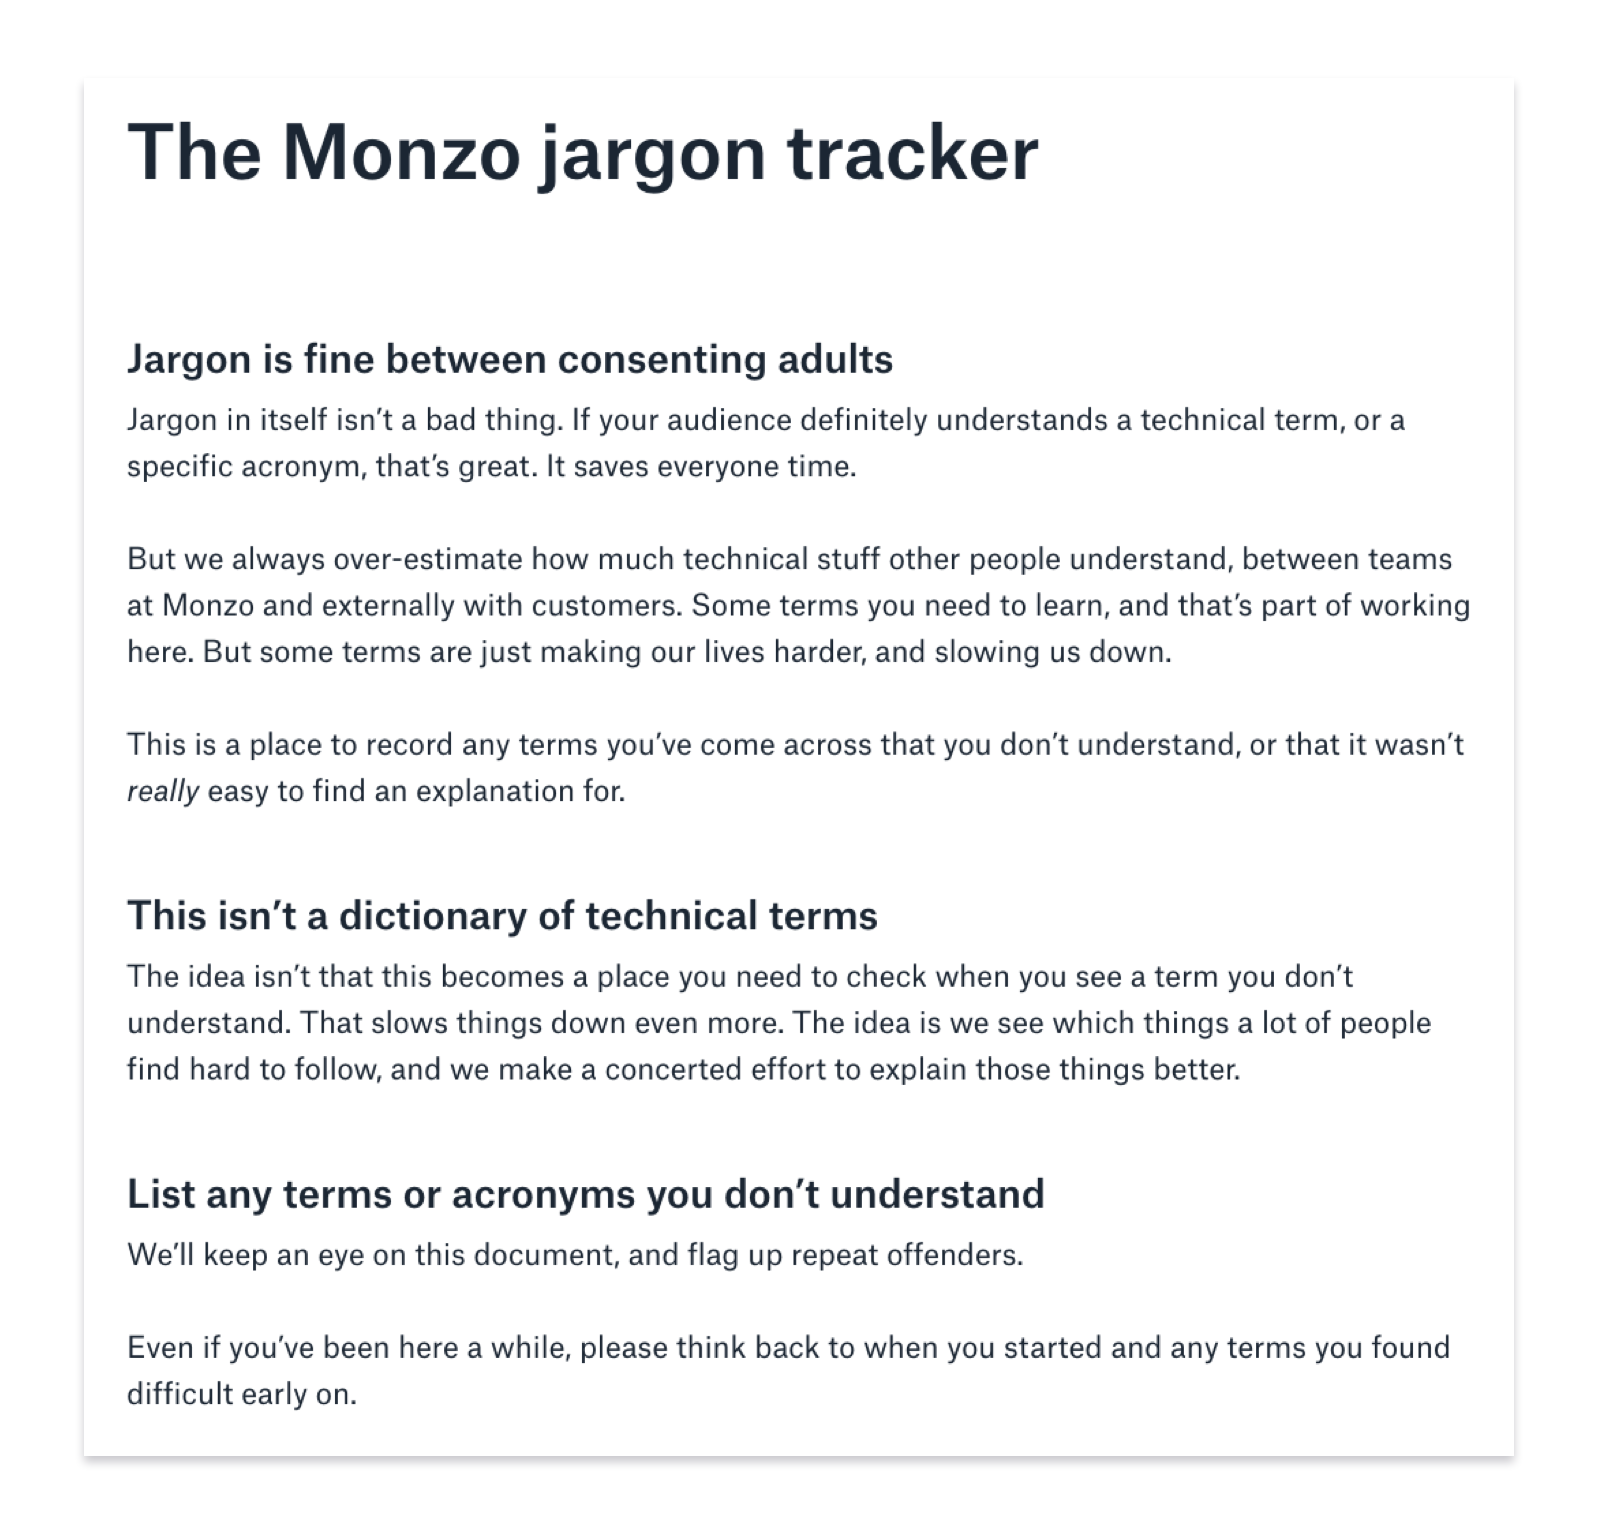 The Monzo jargon tracker. Jargon is fine between consenting adults. Jargon in itself isn't a bad thing. If your audience definitely understands a technical term, or a specific acronym, that's great. It saves everyone time. But we always over-estimate how much technical stuff other people understand, between teams at Monzo and externally with customers. Some terms you need to learn, and that's part of working here. But some terms are just making our lives harder, and slowing us down. This is a place to record any terms you've come across that you don't understand, or that it wasn't really easy to find an explanation for. This isn't a dictionary of technical terms. The idea isn't that this becomes a place you need to check when you see a term you don't understand. That slows things down even more. The idea is we see which things a lot of people find hard to follow, and we make a concerted effort to explain those things better. List any terms or acronyms you don't understand. We'll keep an eye on this document, and flag up repeat offenders. Even if you've been here a while, please think back to when you started and any terms you found difficult early on.